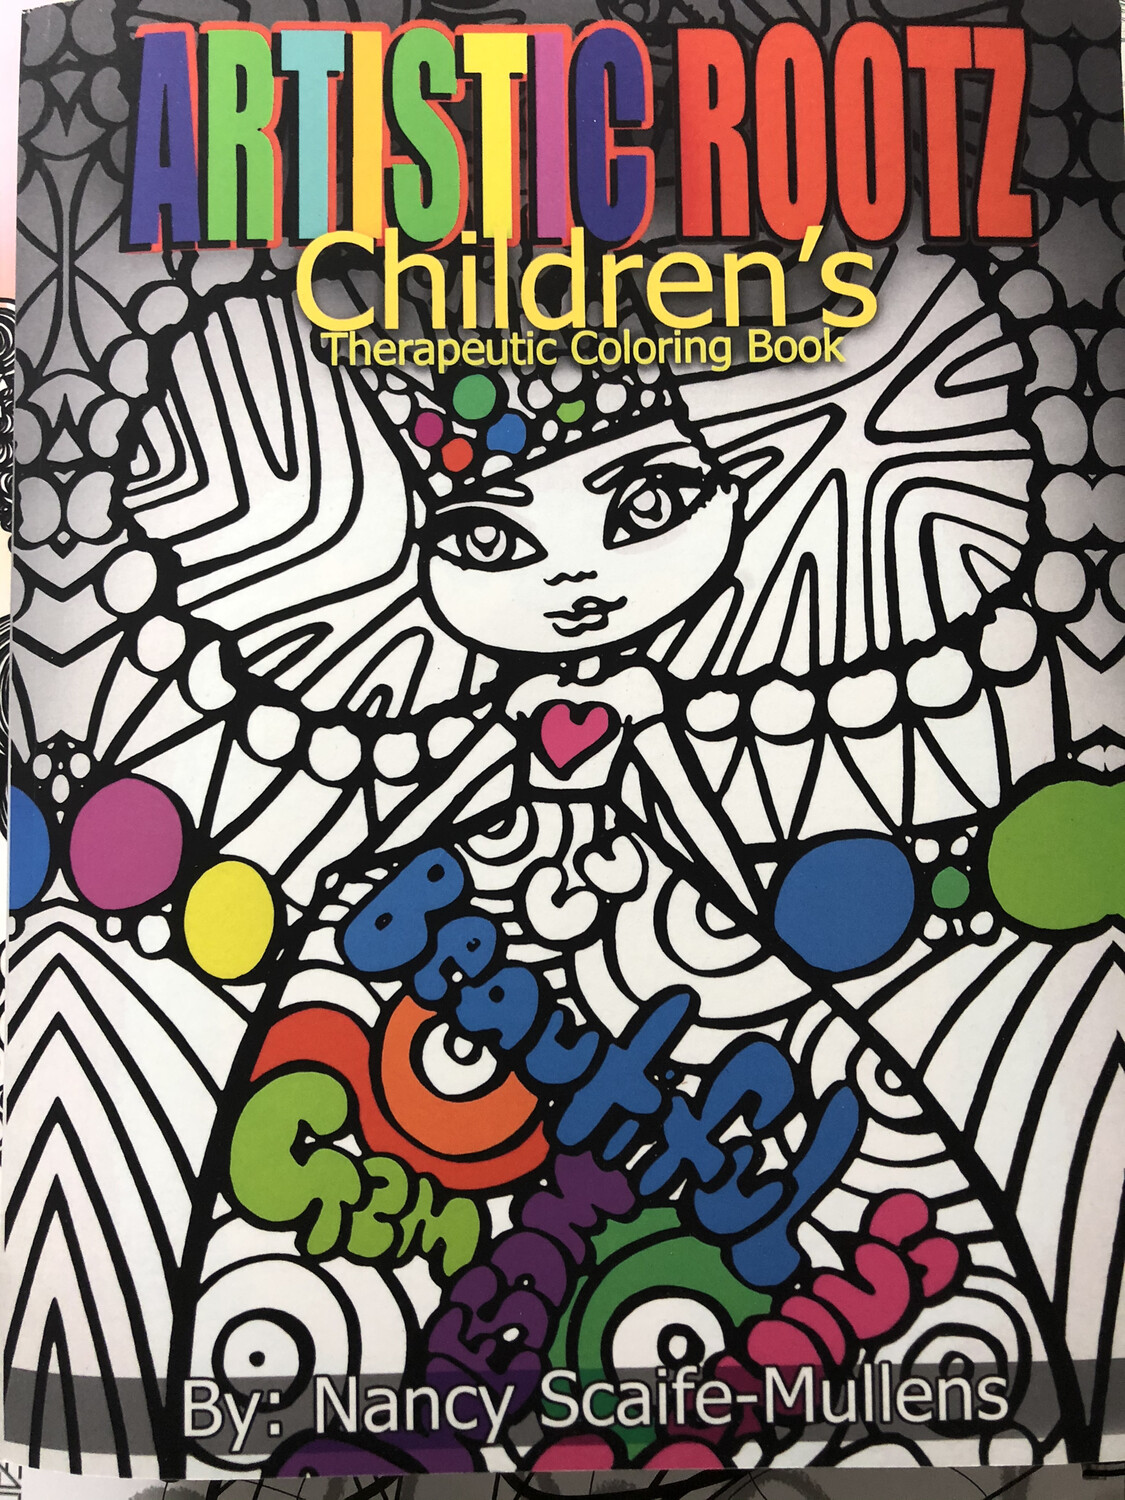 "Artistic Rootz Therapeutic ""Childrens"" Coloring Book"